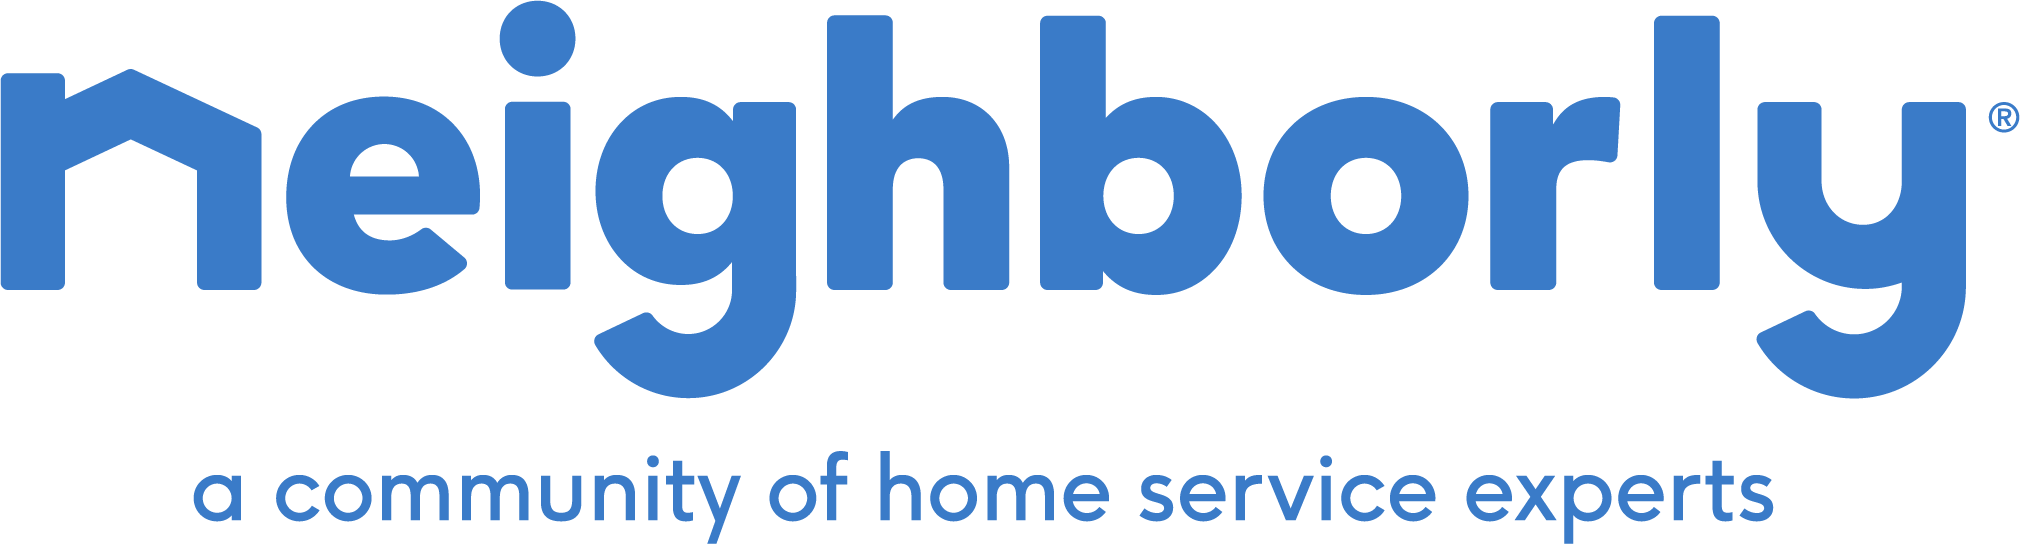 Neighborly: A Community of Home Service Experts